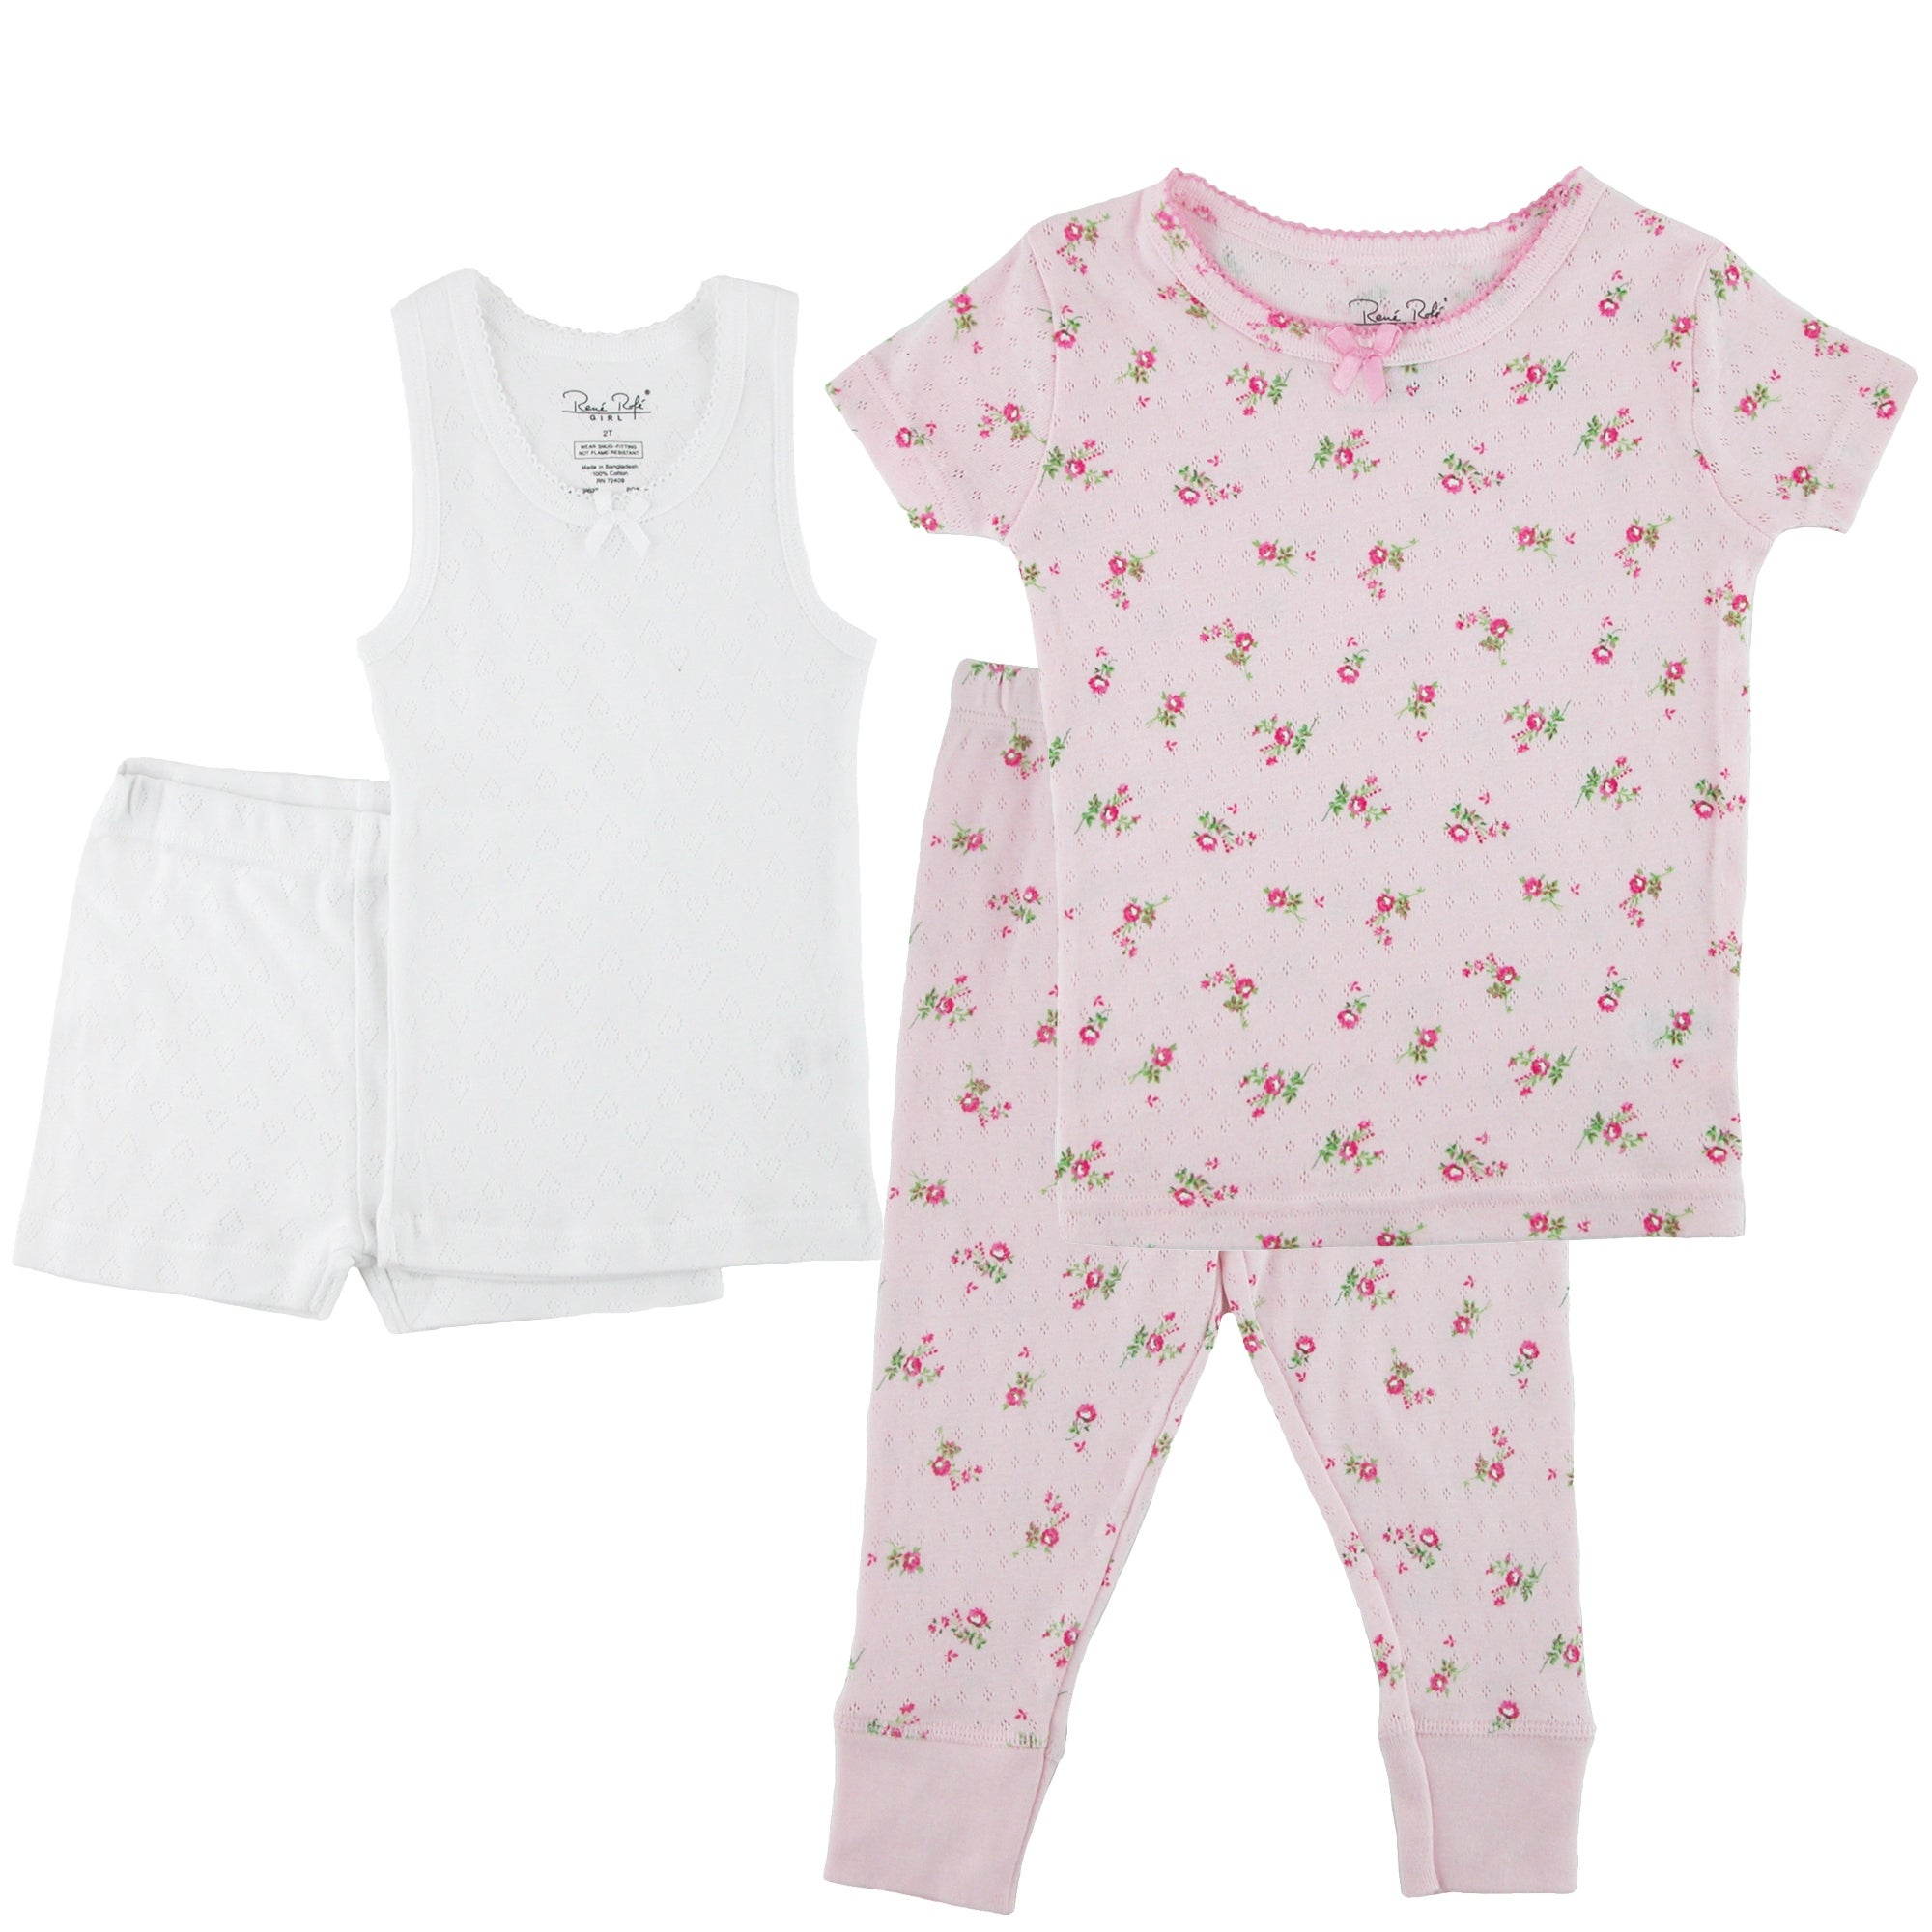 Rene Rofe Toddler Girls Tee Tank Short Pant Pajama Set Free